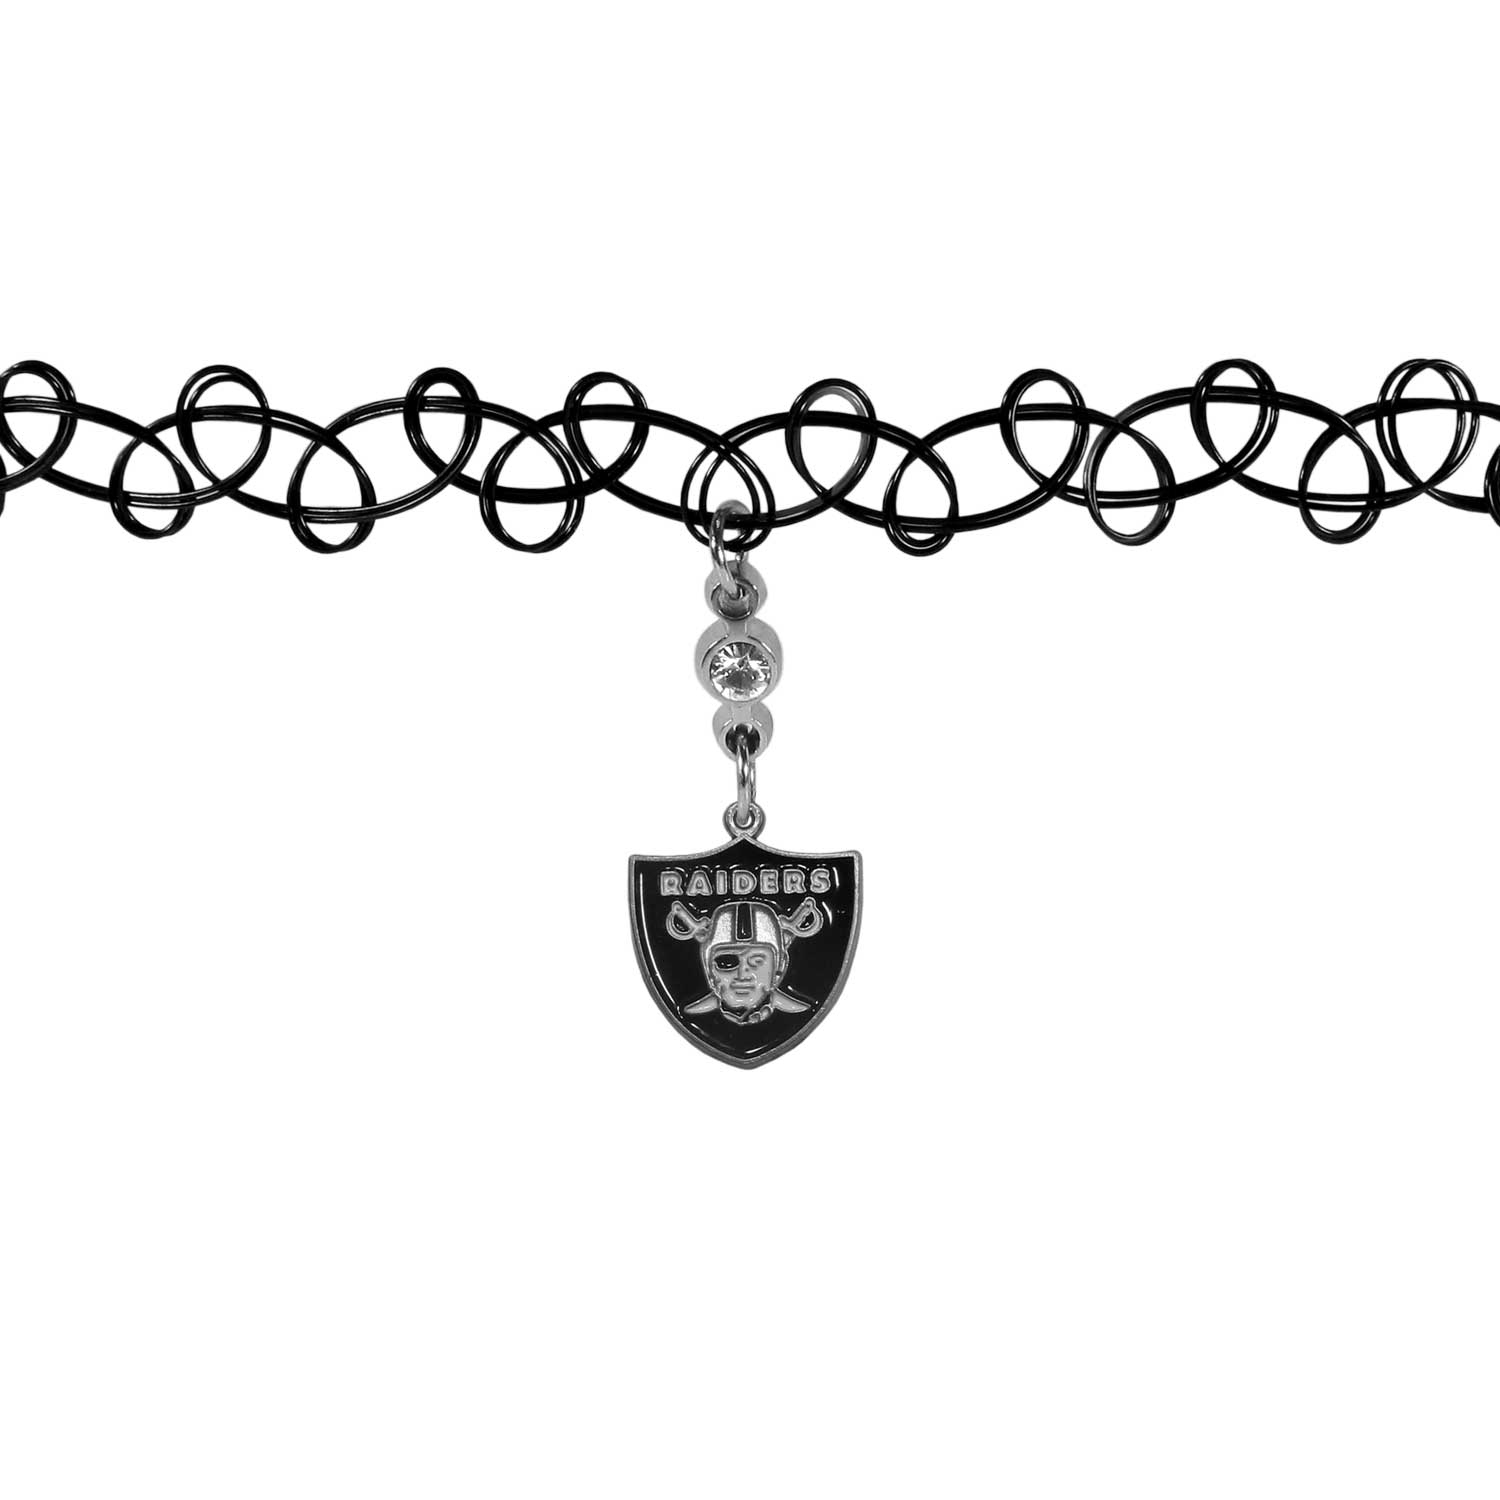 Oakland Raiders Knotted Choker - This retro, knotted choker is a cool and unique piece of fan jewelry. The tattoo style choker features a high polish Oakland Raiders charm with rhinestone accents.